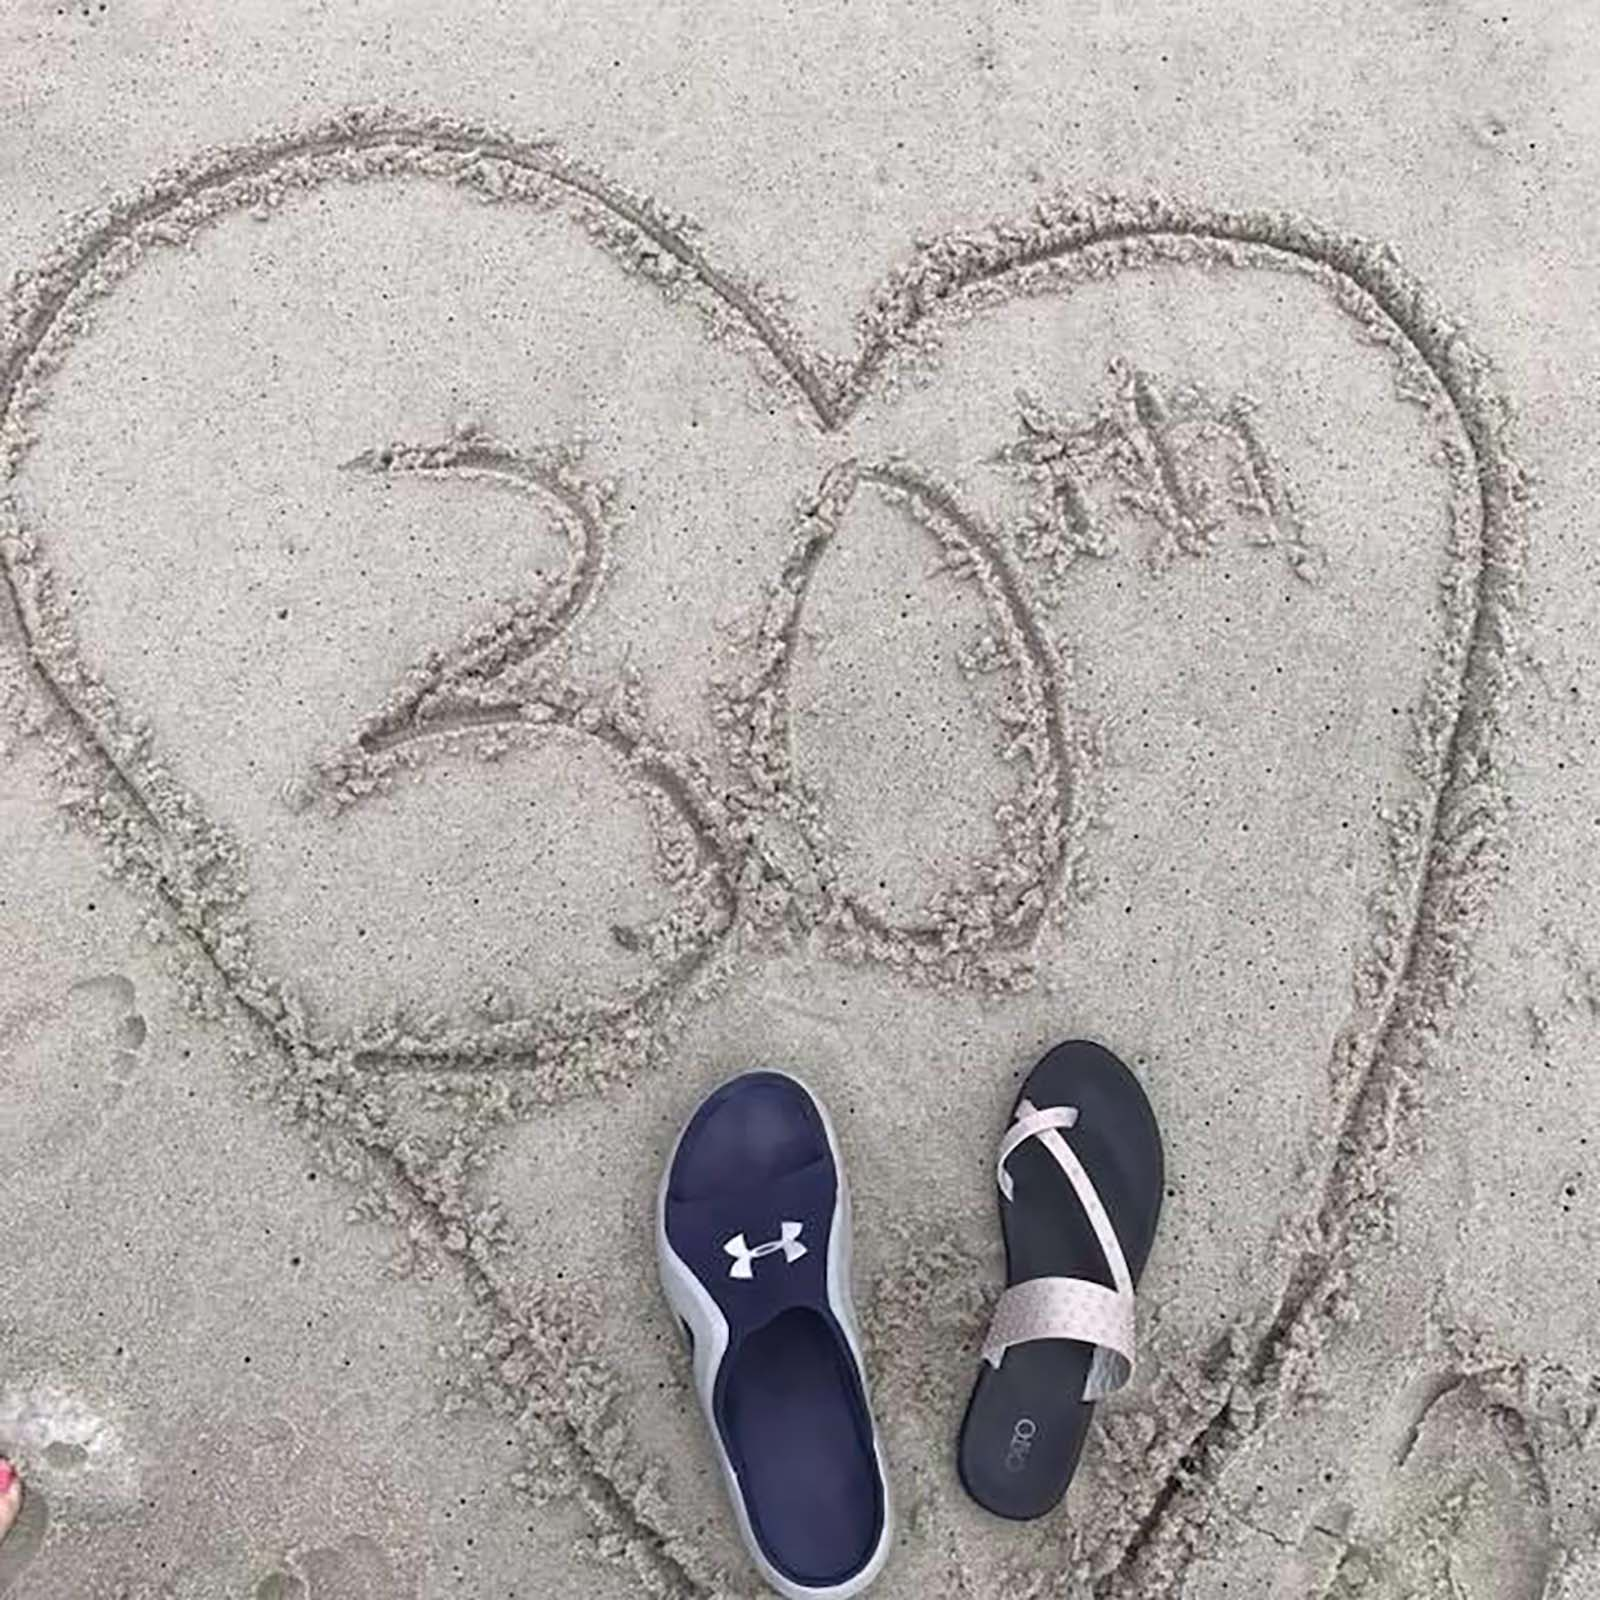 30th written in the sand